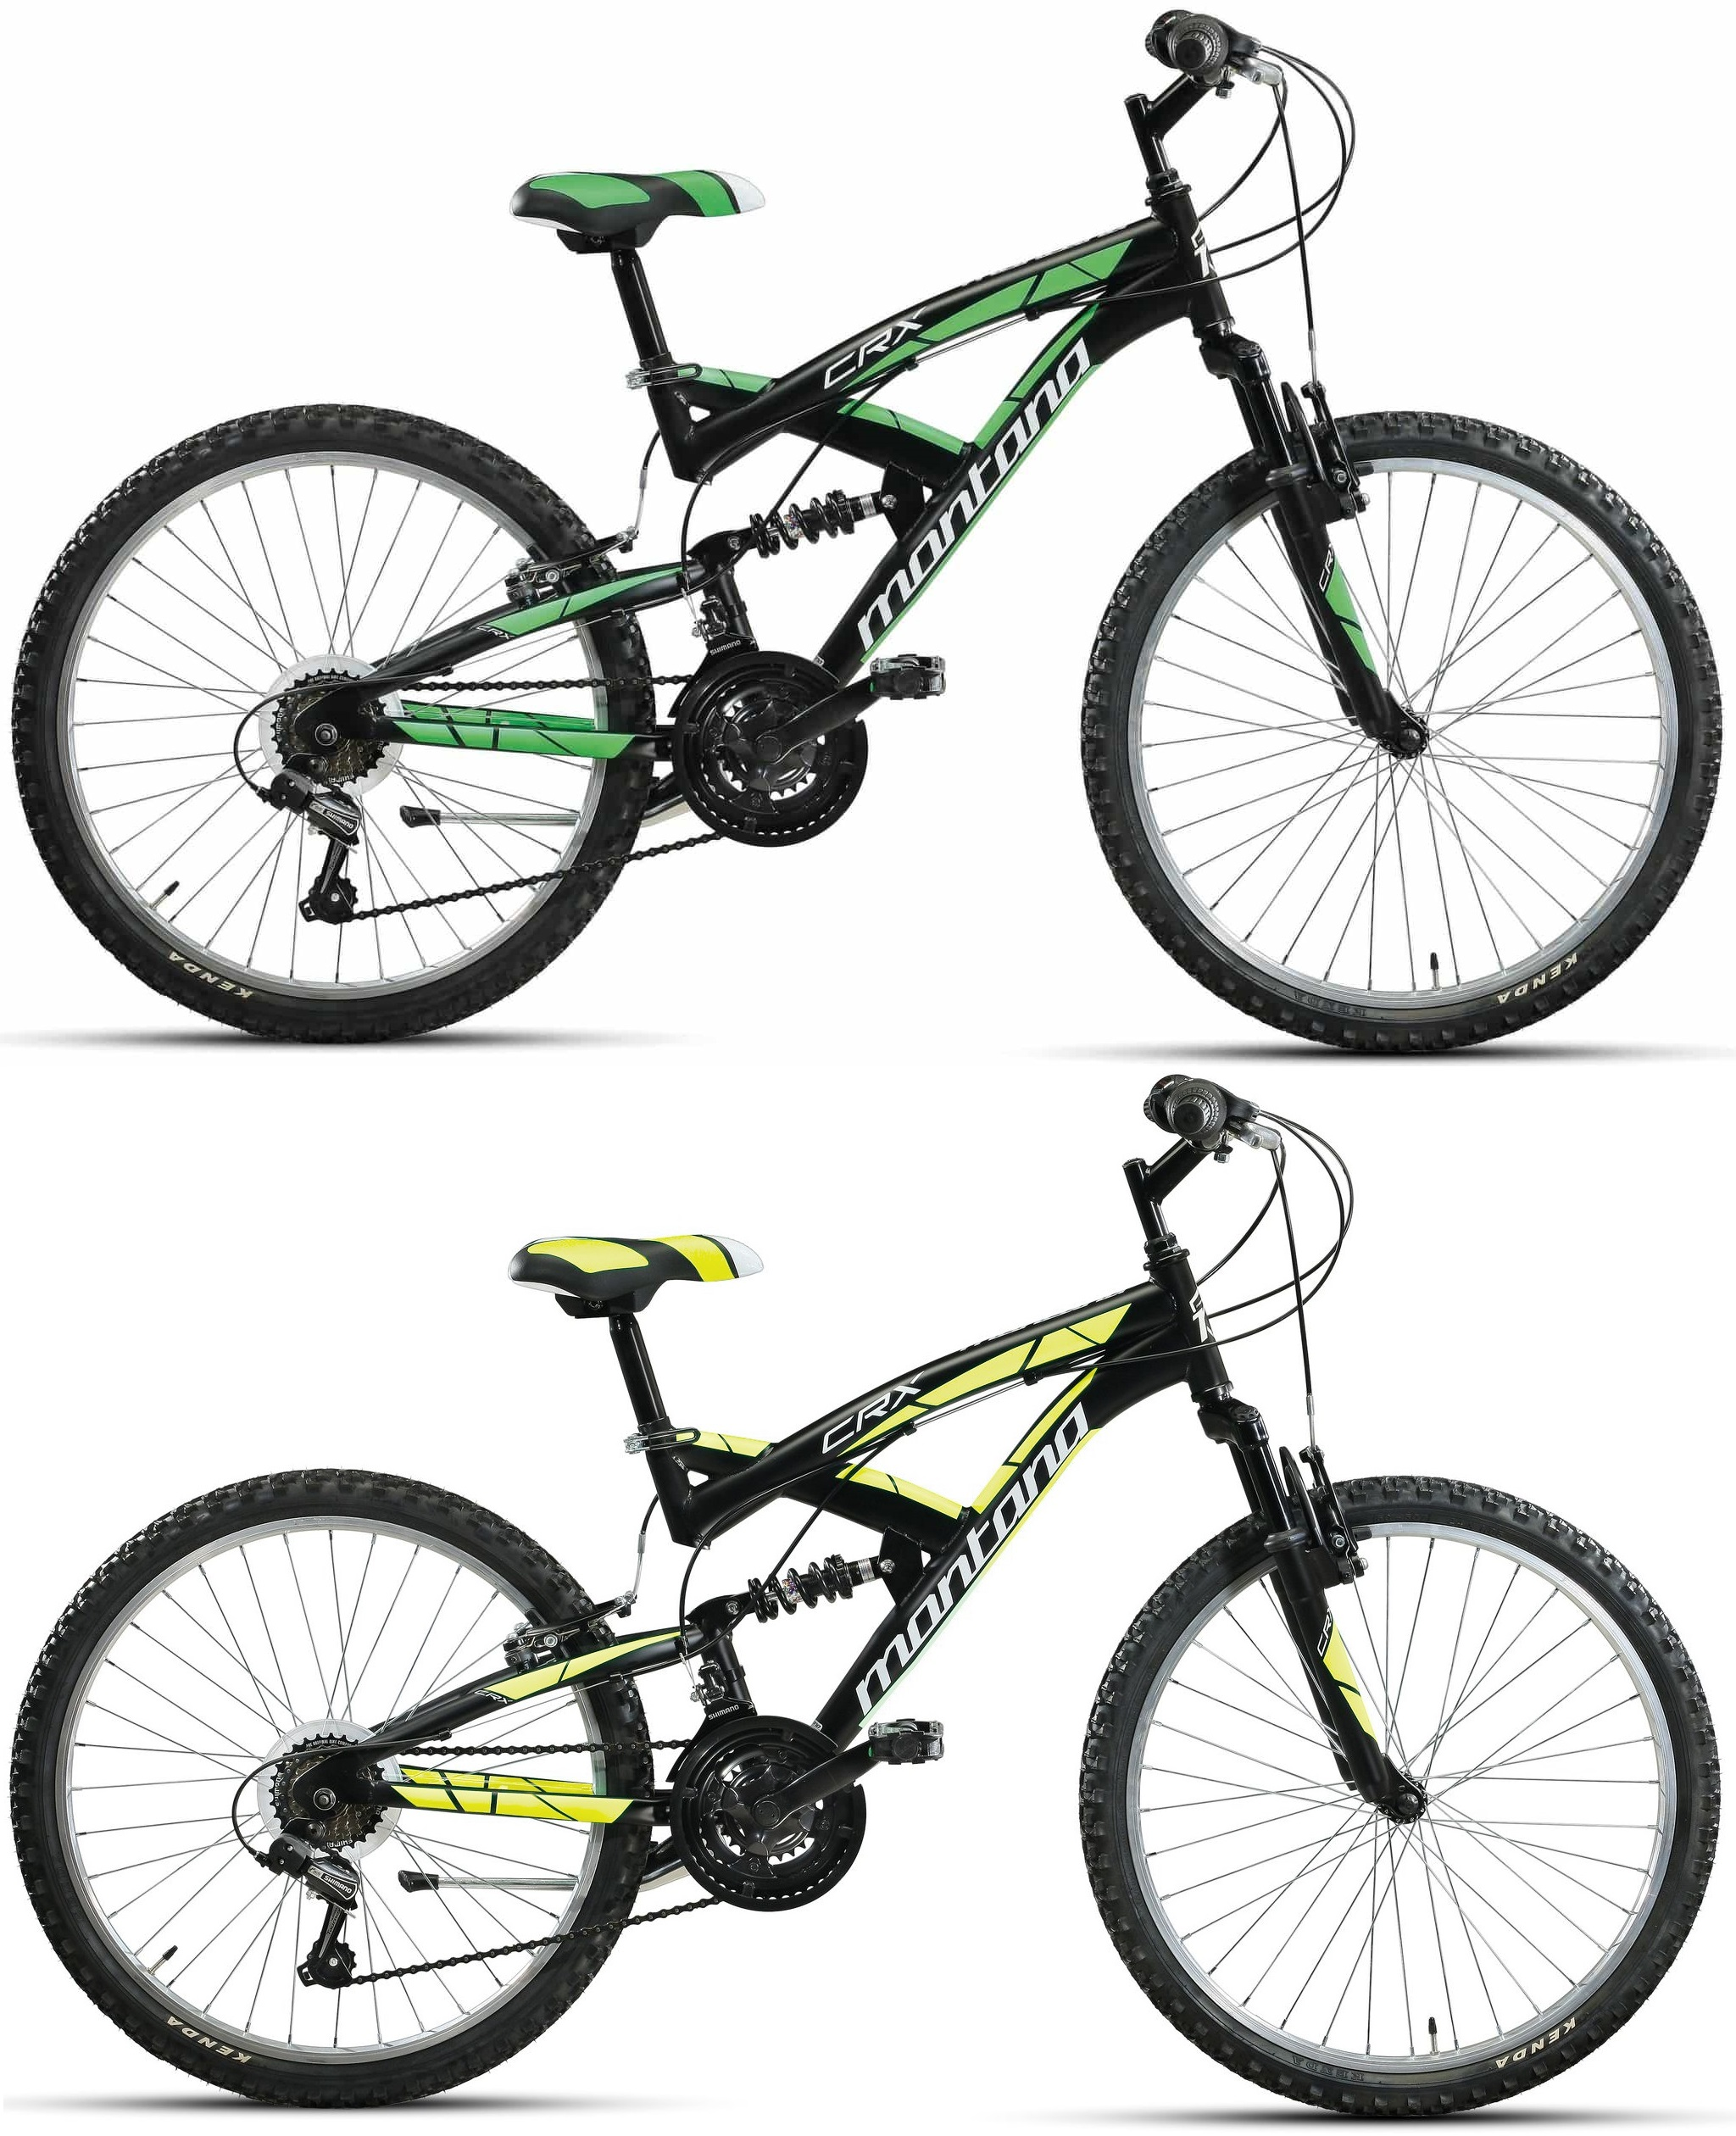 20 zoll fully mountainbike montana crx 18 gang fahrr der. Black Bedroom Furniture Sets. Home Design Ideas